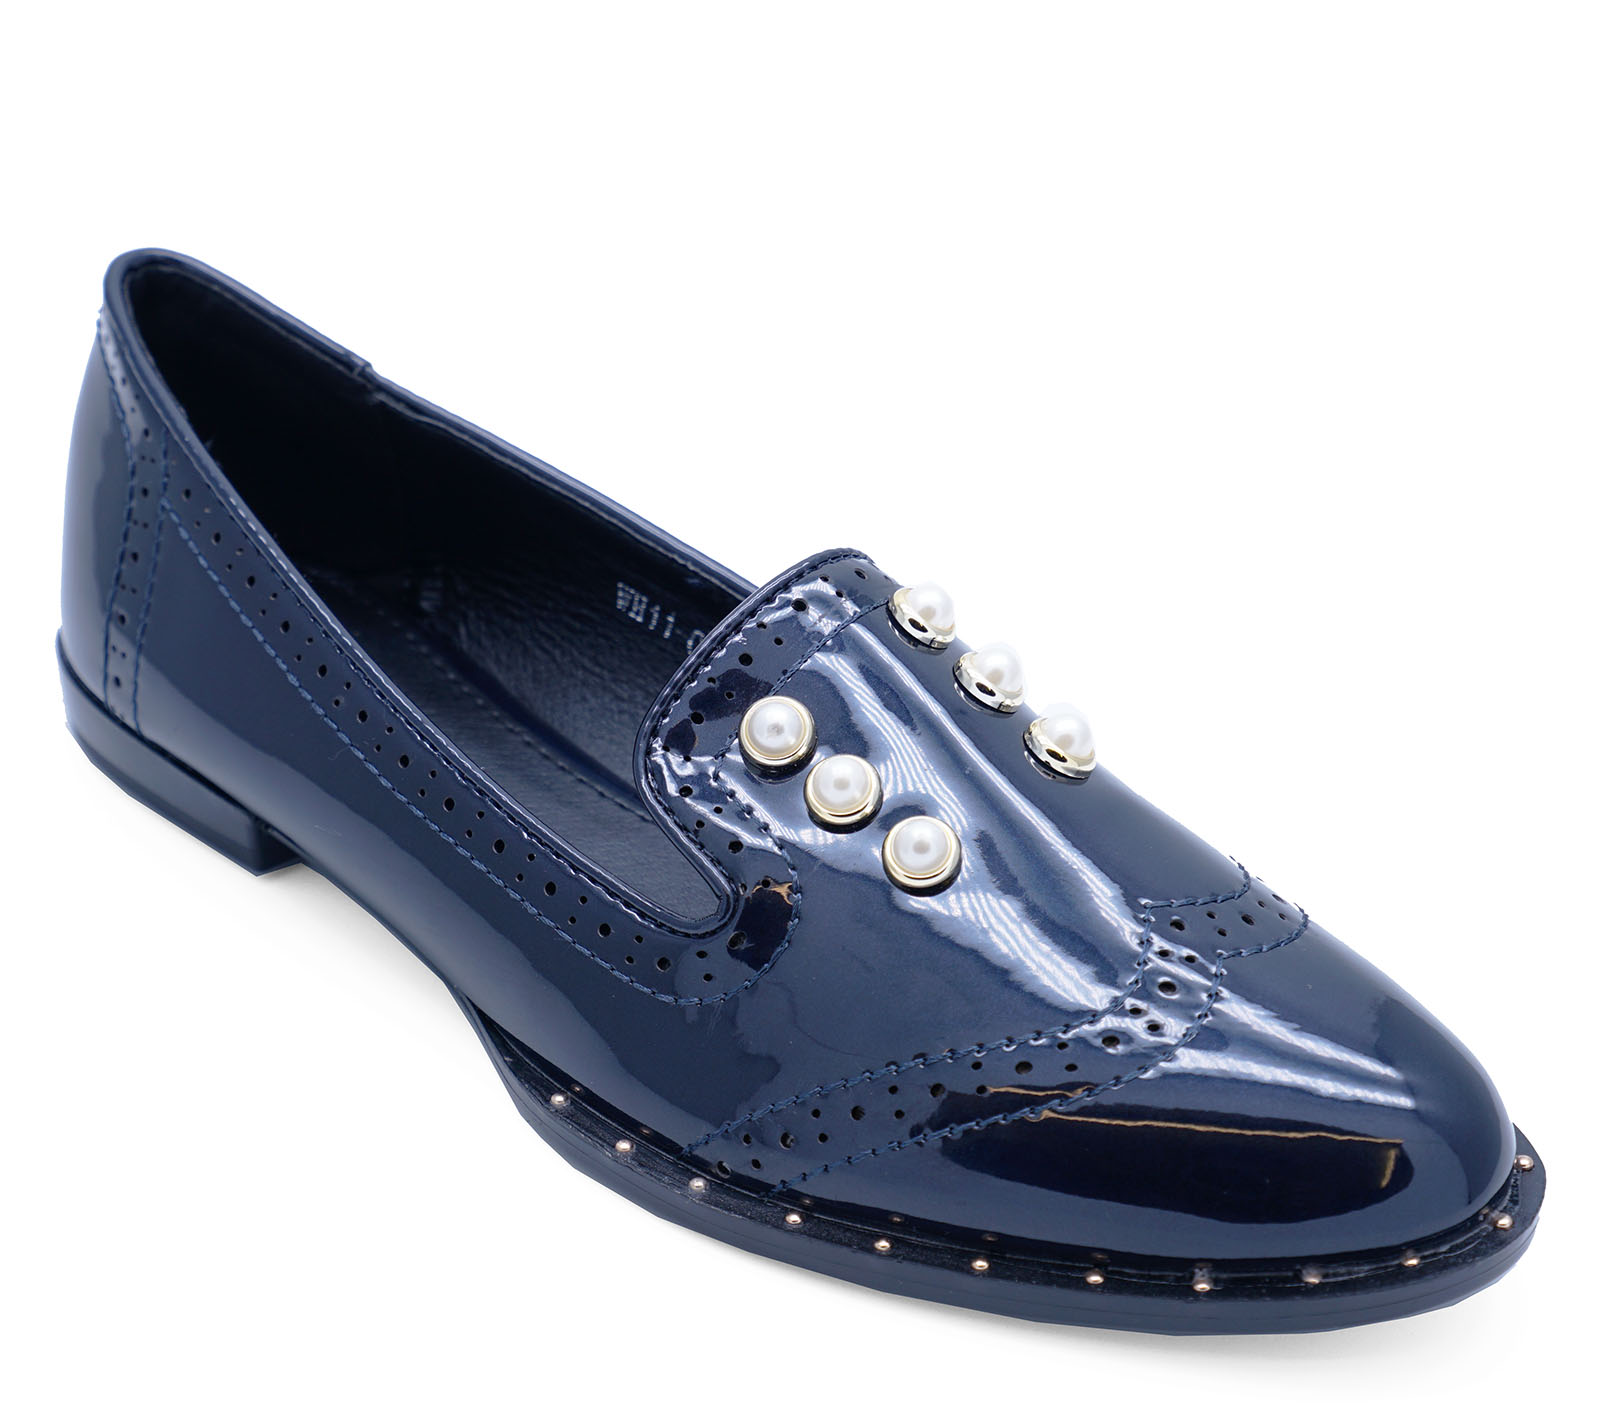 7d07aa9b679 Sentinel LADIES NAVY PATENT SLIP-ON FLAT LOAFERS SMART CASUAL COMFY WORK  SHOES SIZES 3-